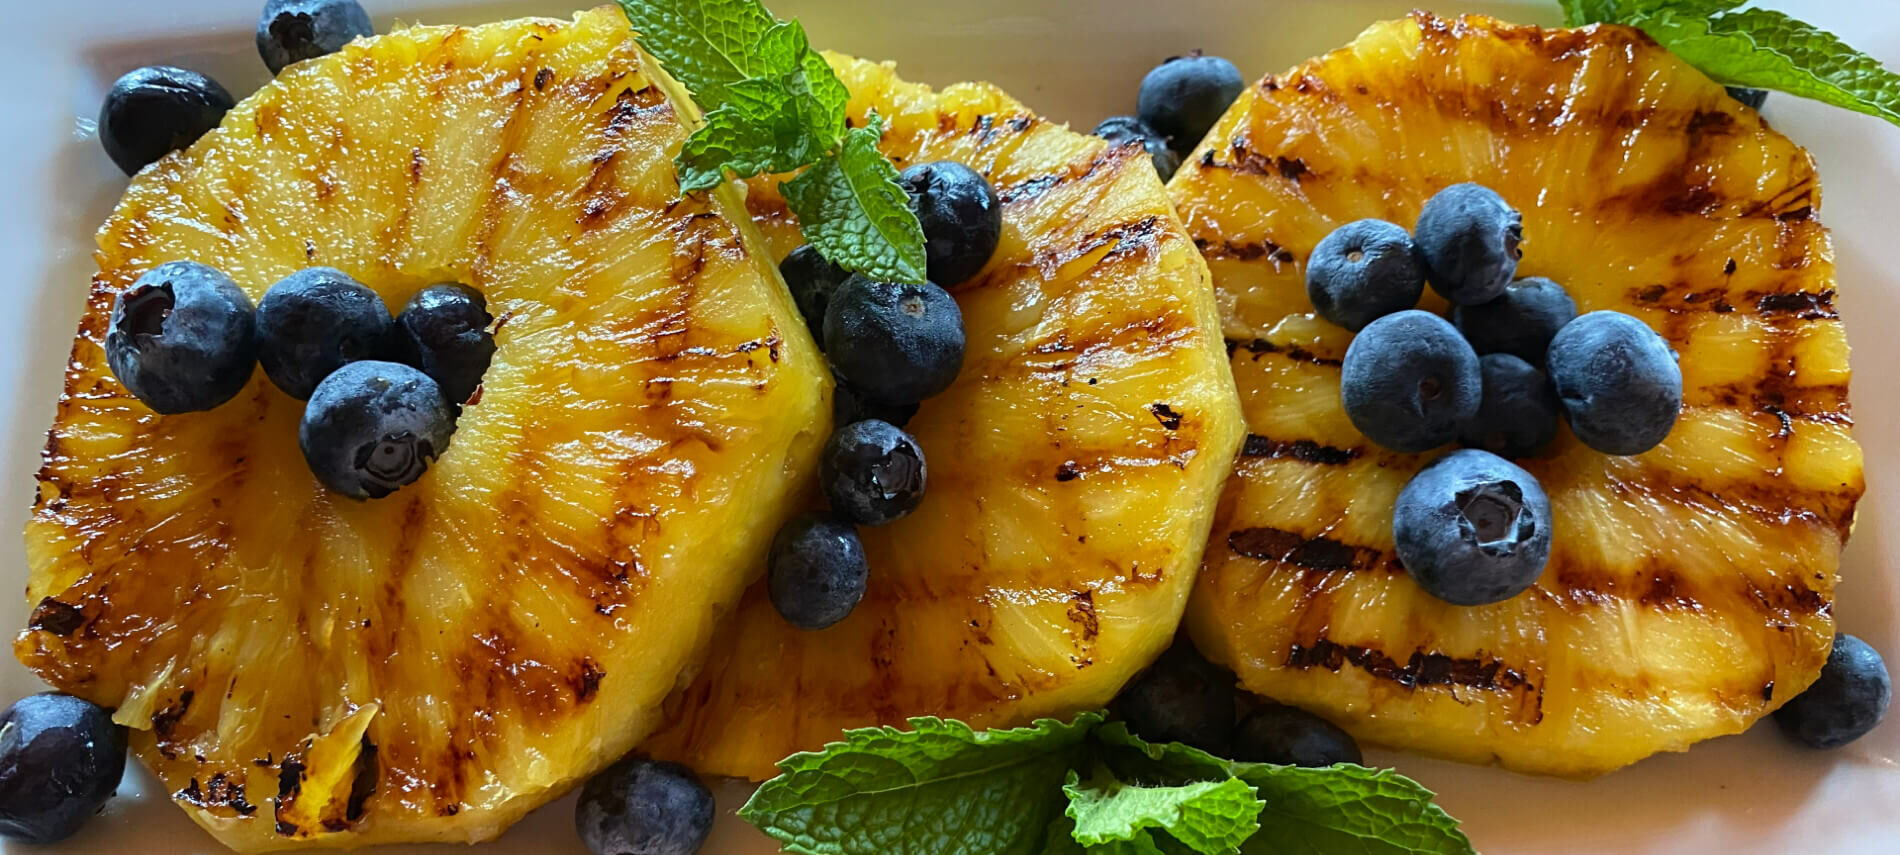 Grilled Pineapple Slices with blueberries and mint leaves on a white plate